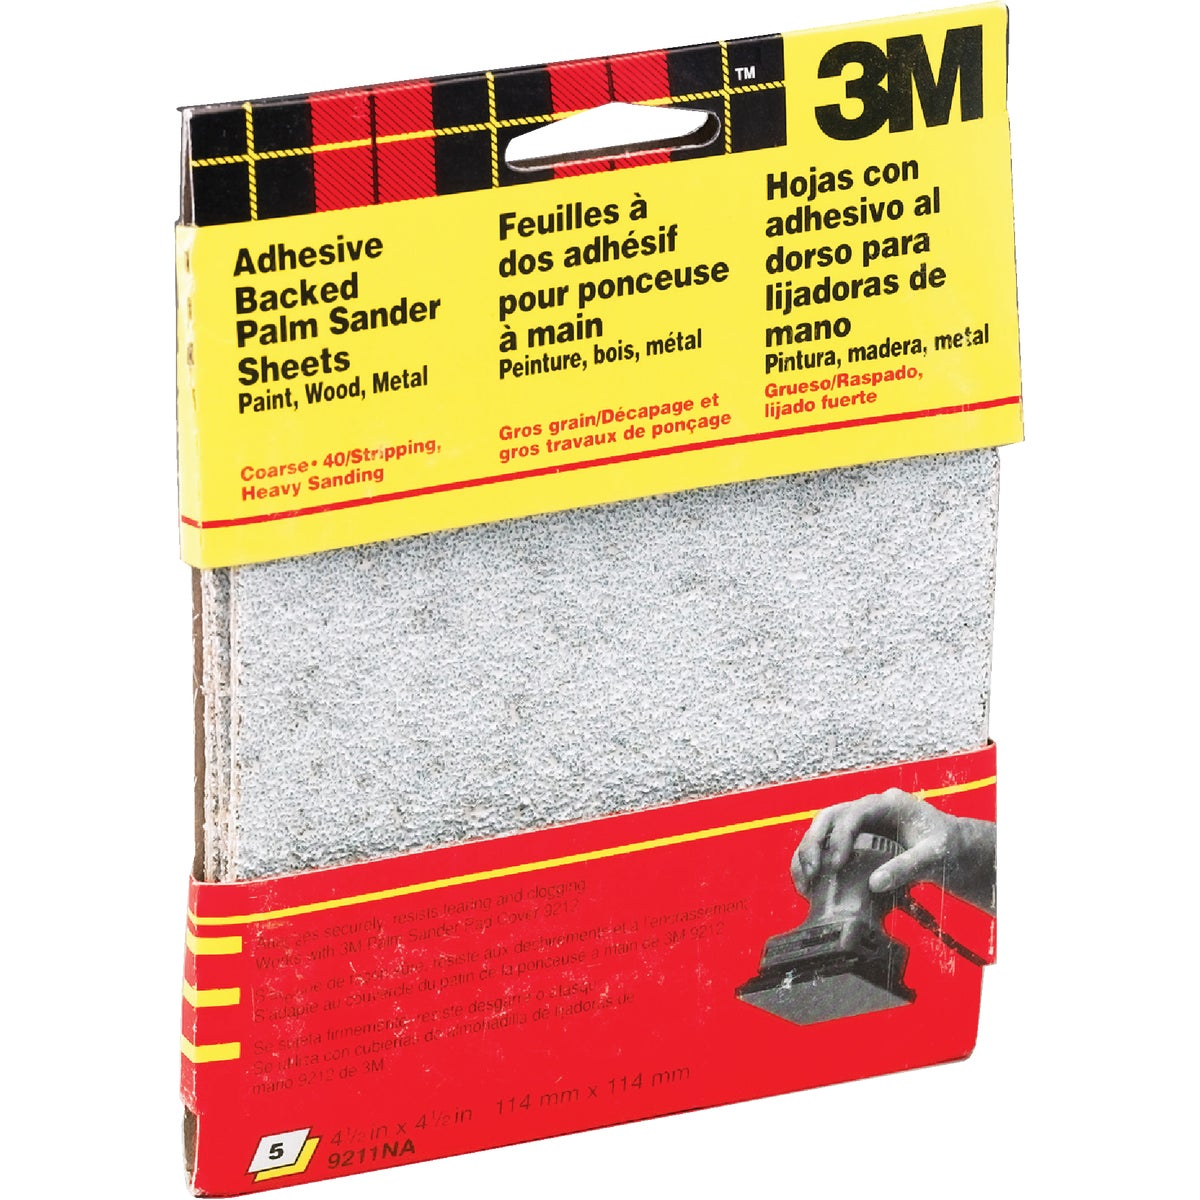 COARSE PALM SANDING KIT - 9211NA by 3m Co